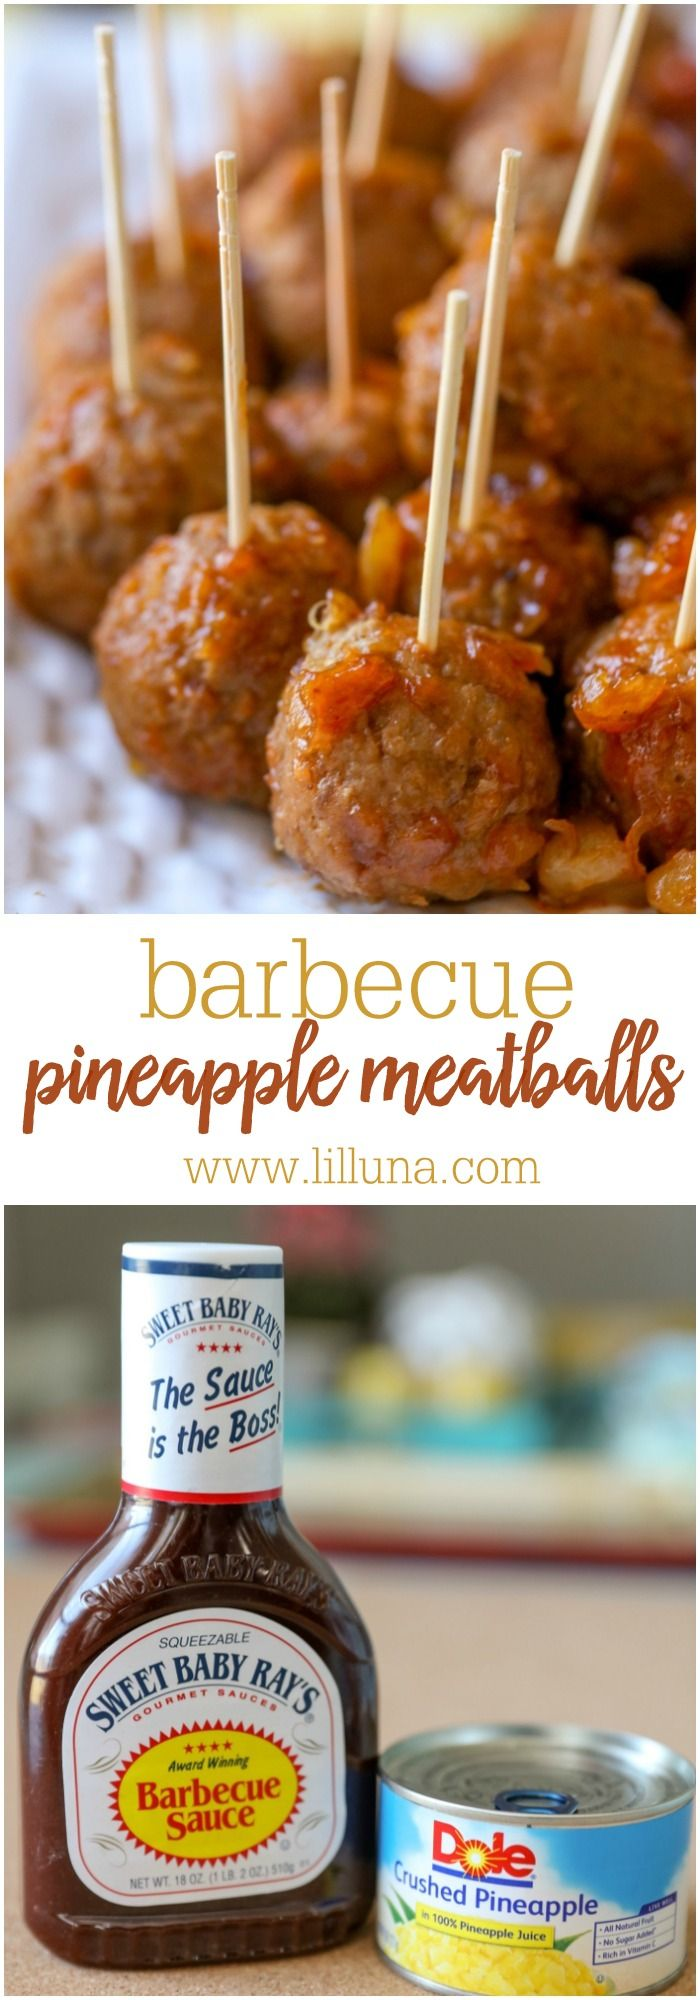 Barbecue Pineapple Meatballs – just 3 ingredients and perfect as an appetizer recipe for parties and get t